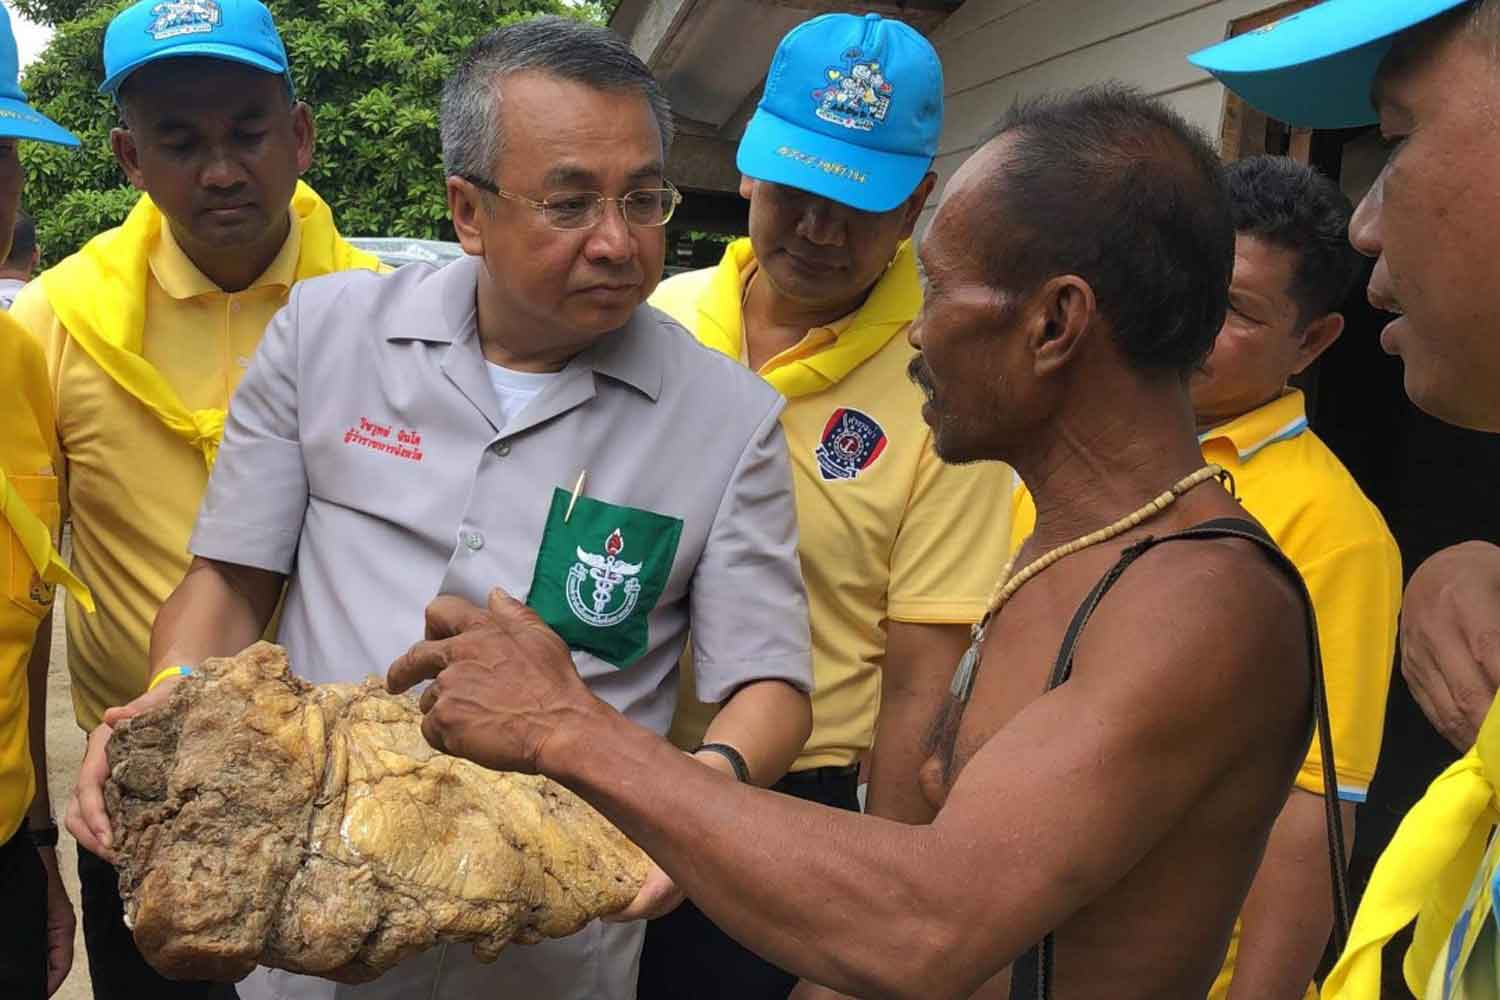 Jamras Thiachote, 55, right, shows the six-kilogramme lump that he hopes is ambergris to Surat Thani governor Wichawut Jinto, on Koh Phaluay in Koh Samui district, Surat Thani, on Tuesday. (Photo by Supapong Chaolan)